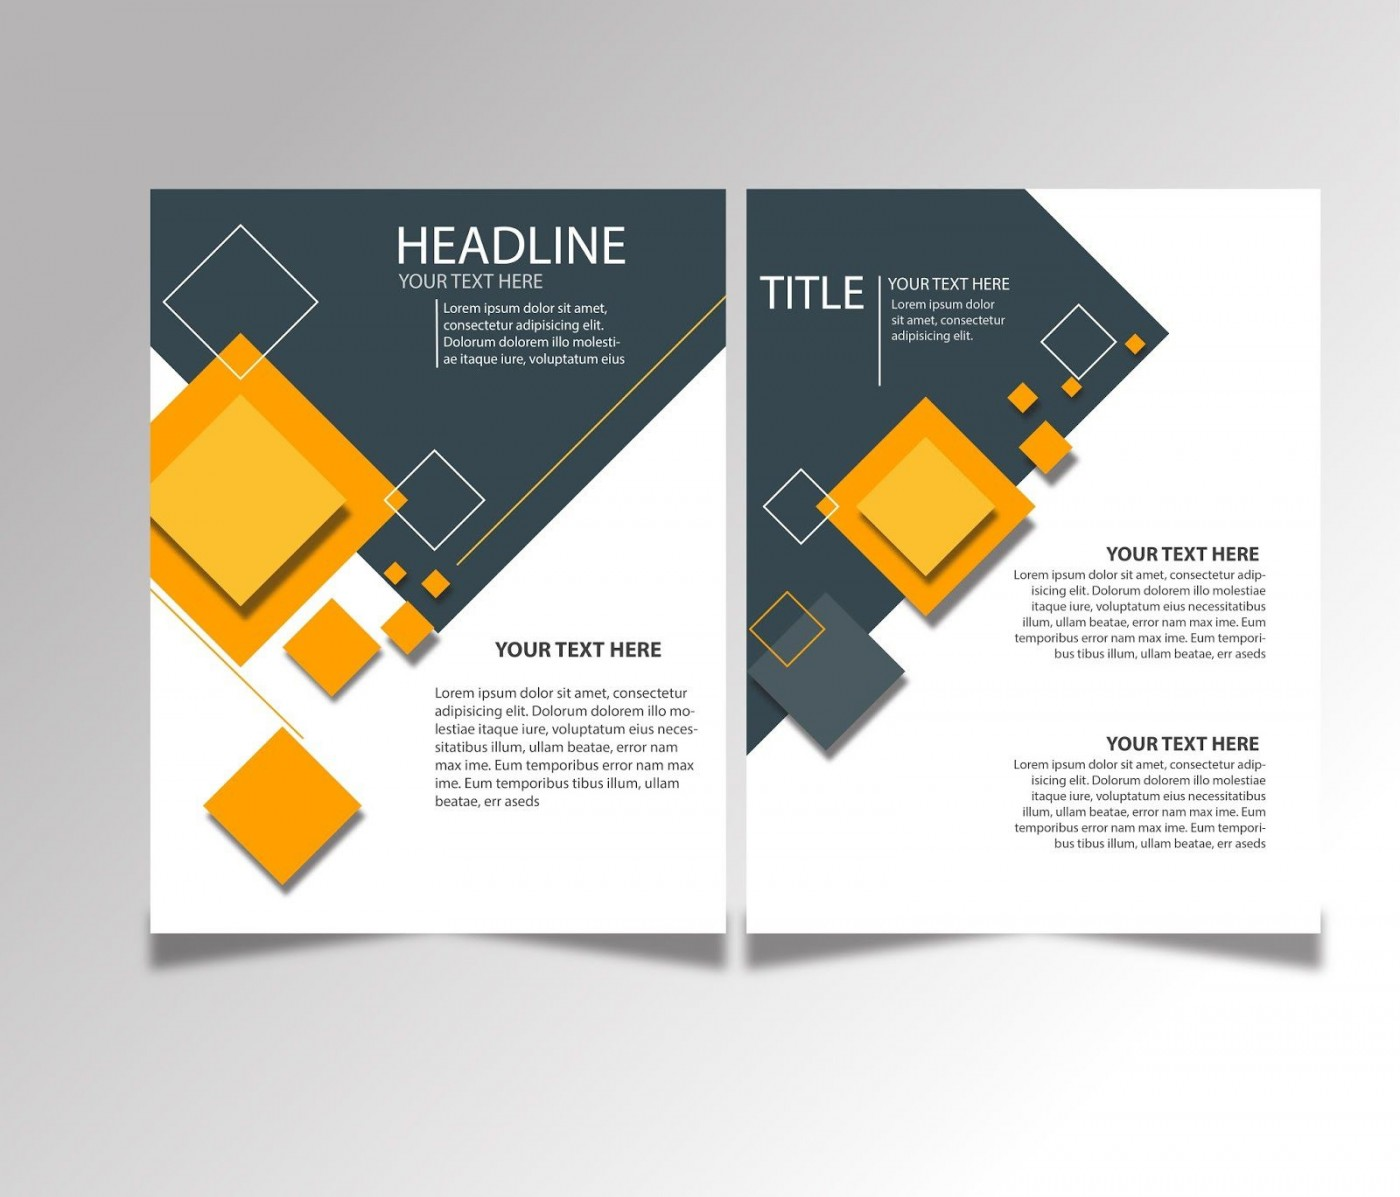 009 Magnificent Photoshop Brochure Design Template Free Download Highest Clarity 1400